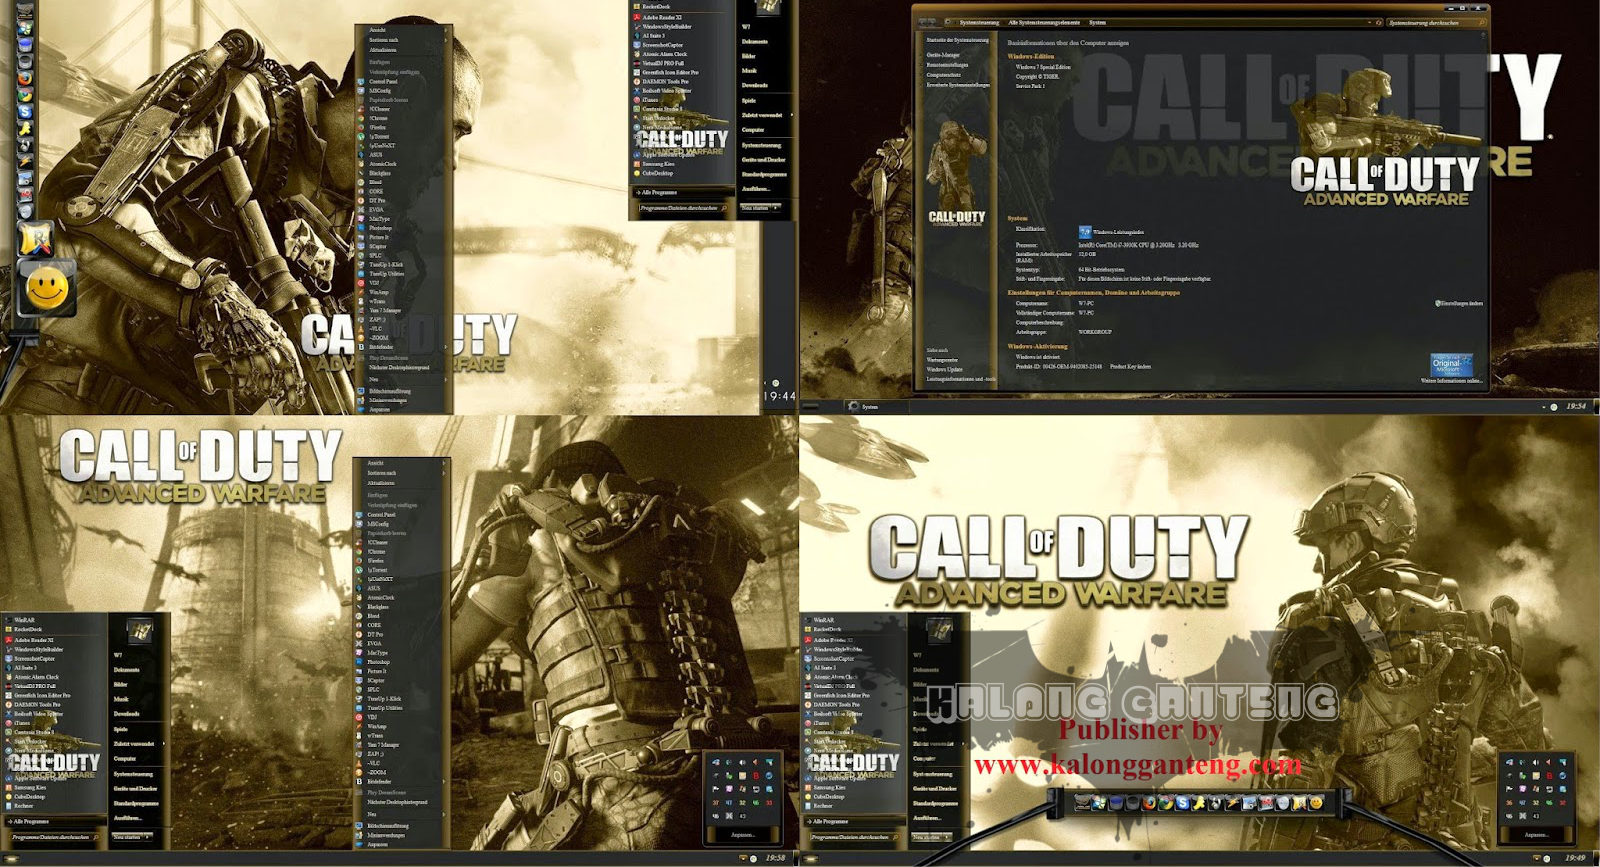 Call of Duty Skinpack for Windows 8/8.1 Screenshot